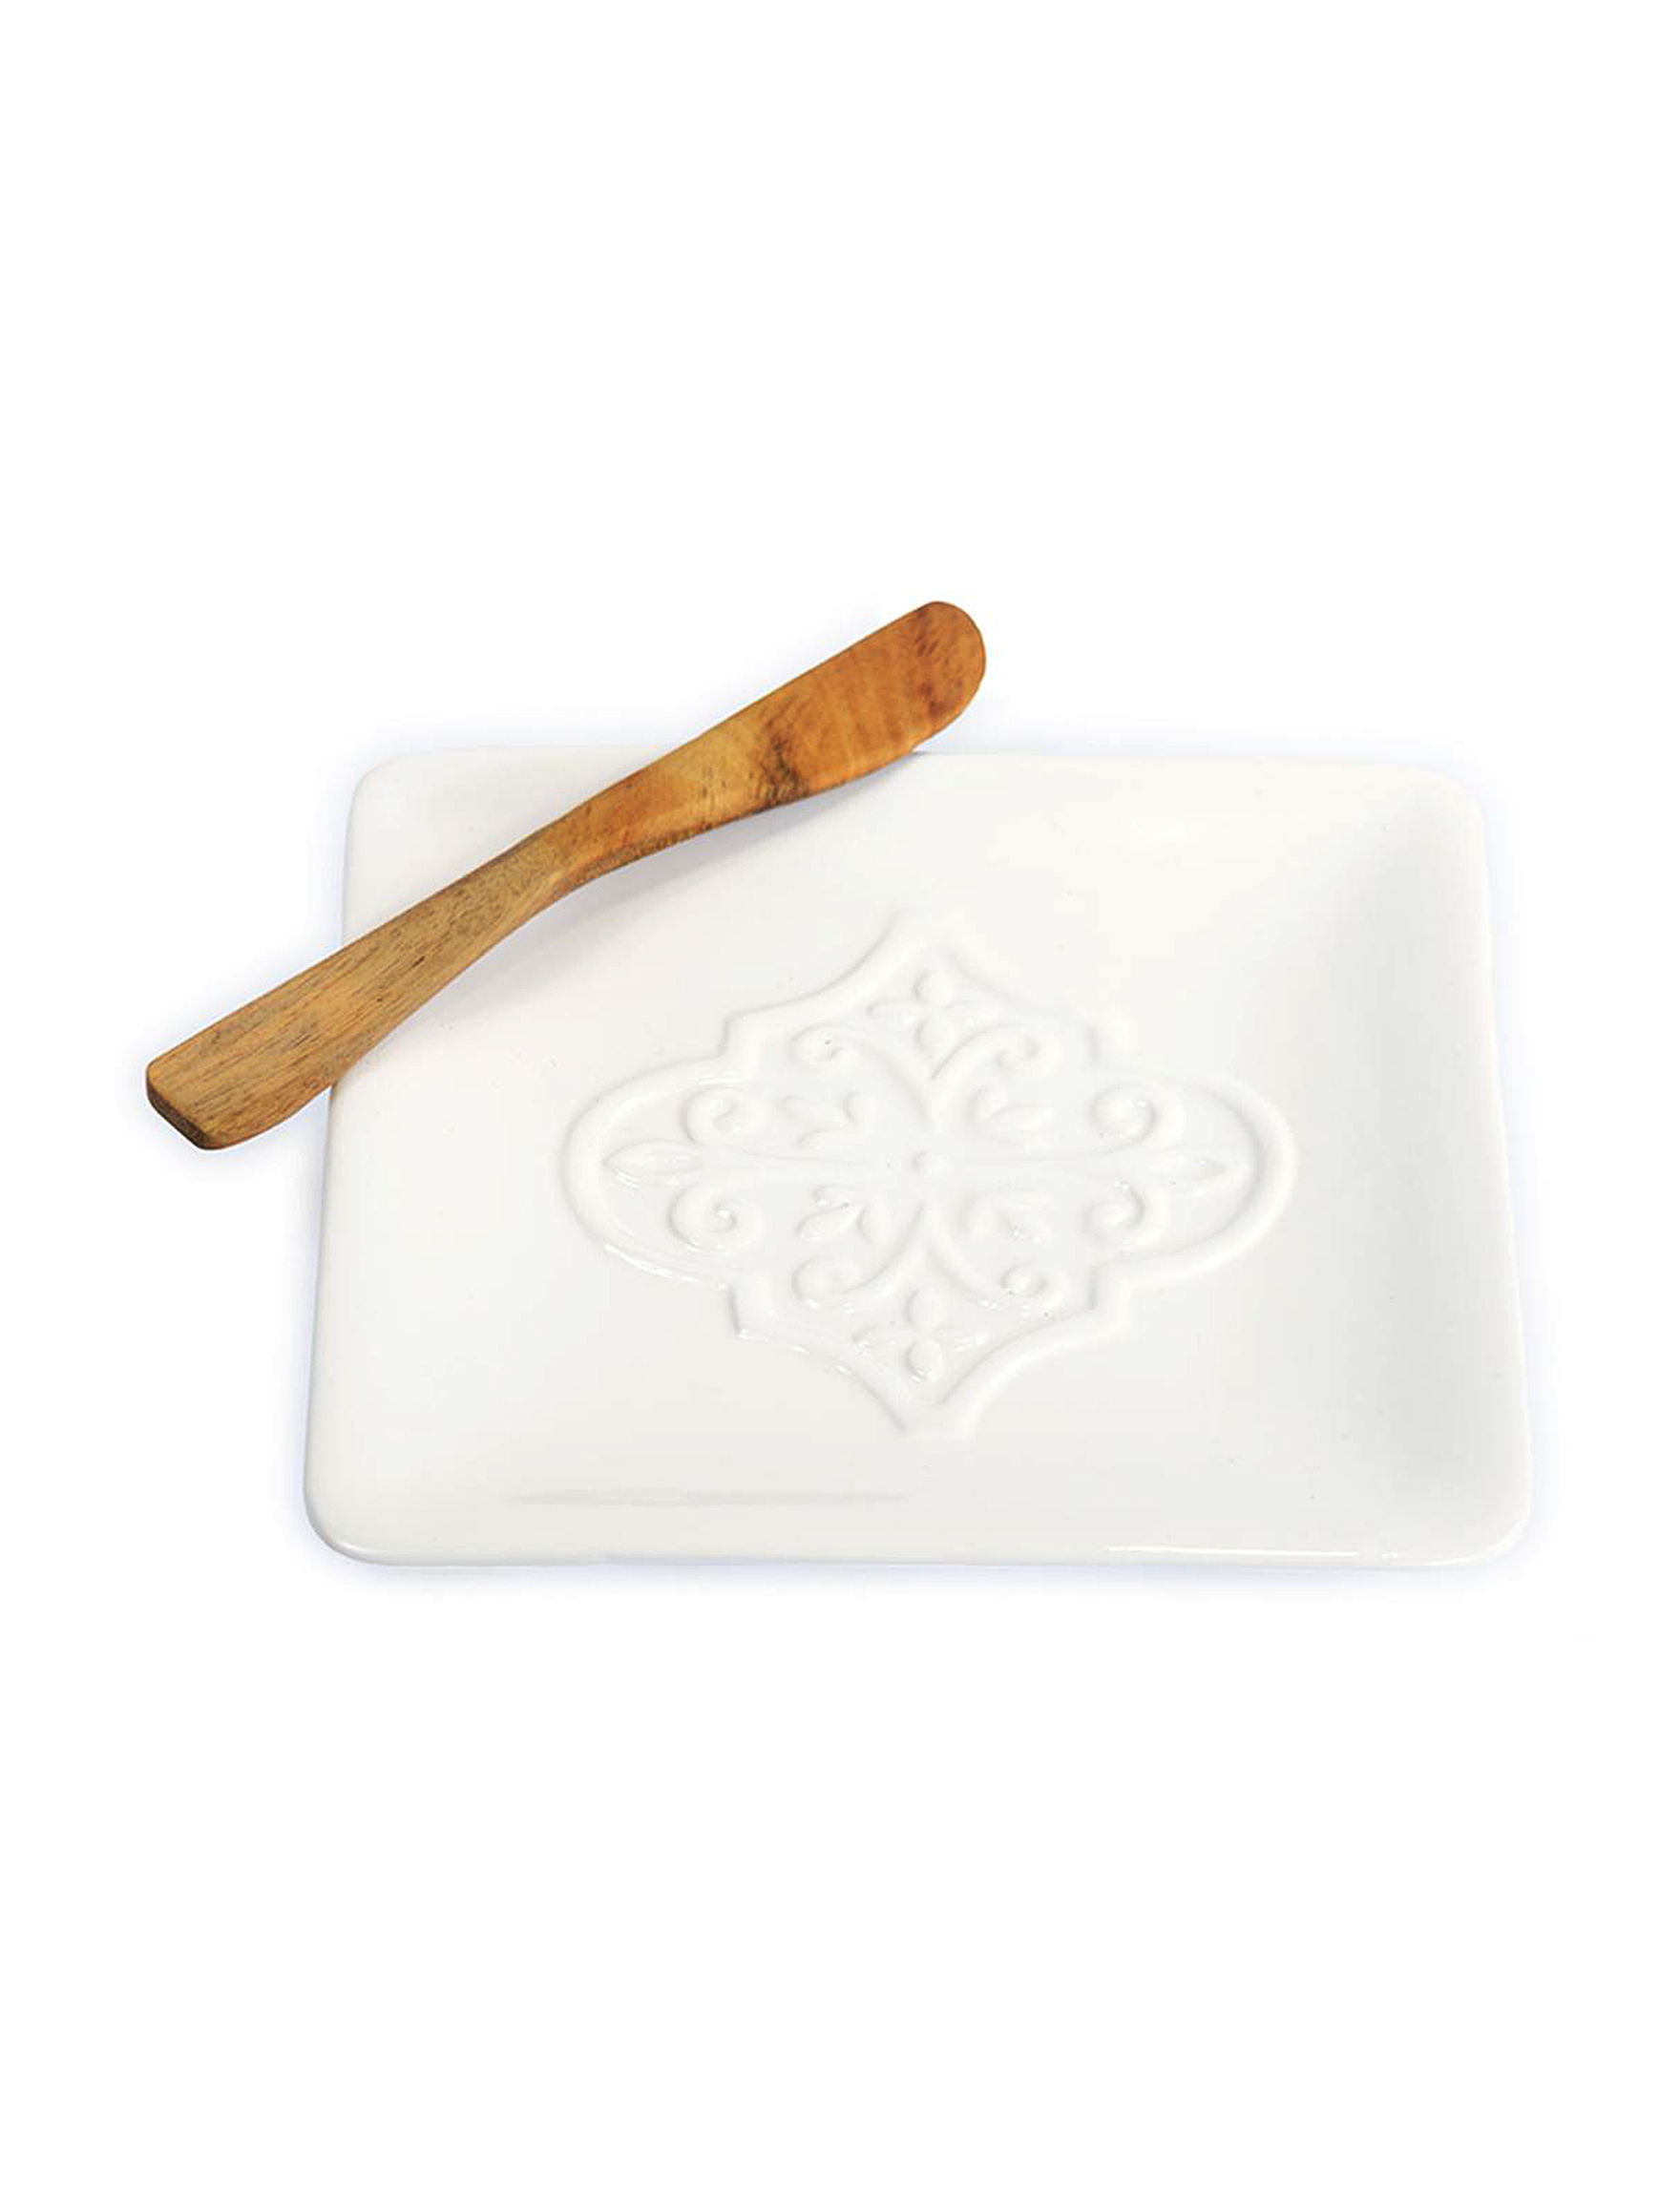 Mud Pie Multi Cheese Boards Serveware